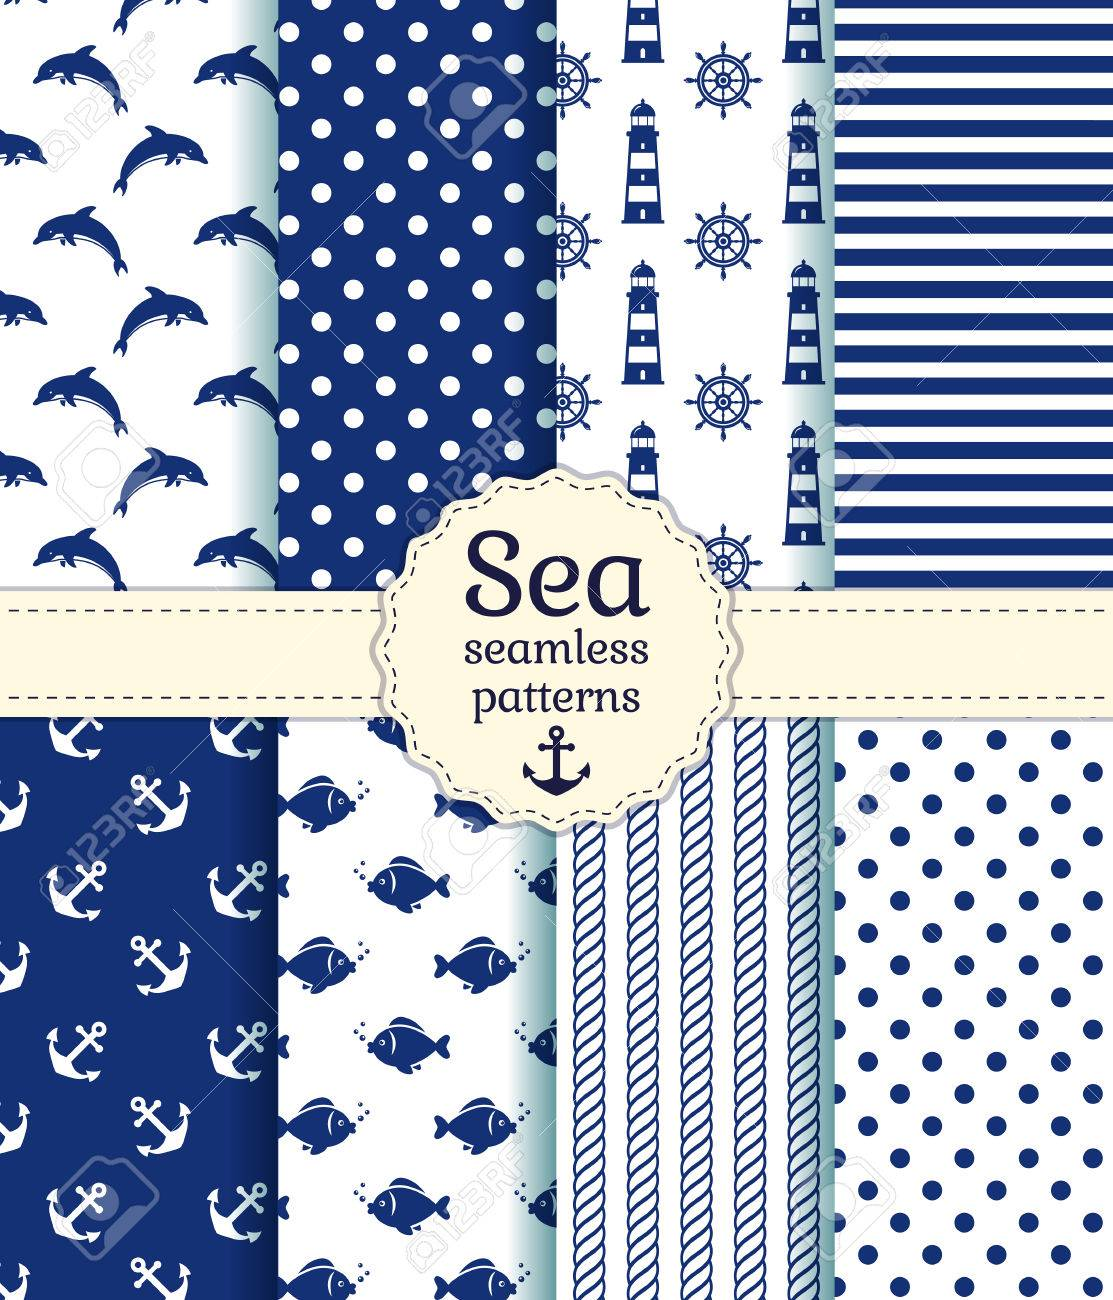 Set of sea and nautical seamless patterns in white and dark blue colors. Vector illustration. - 51878258